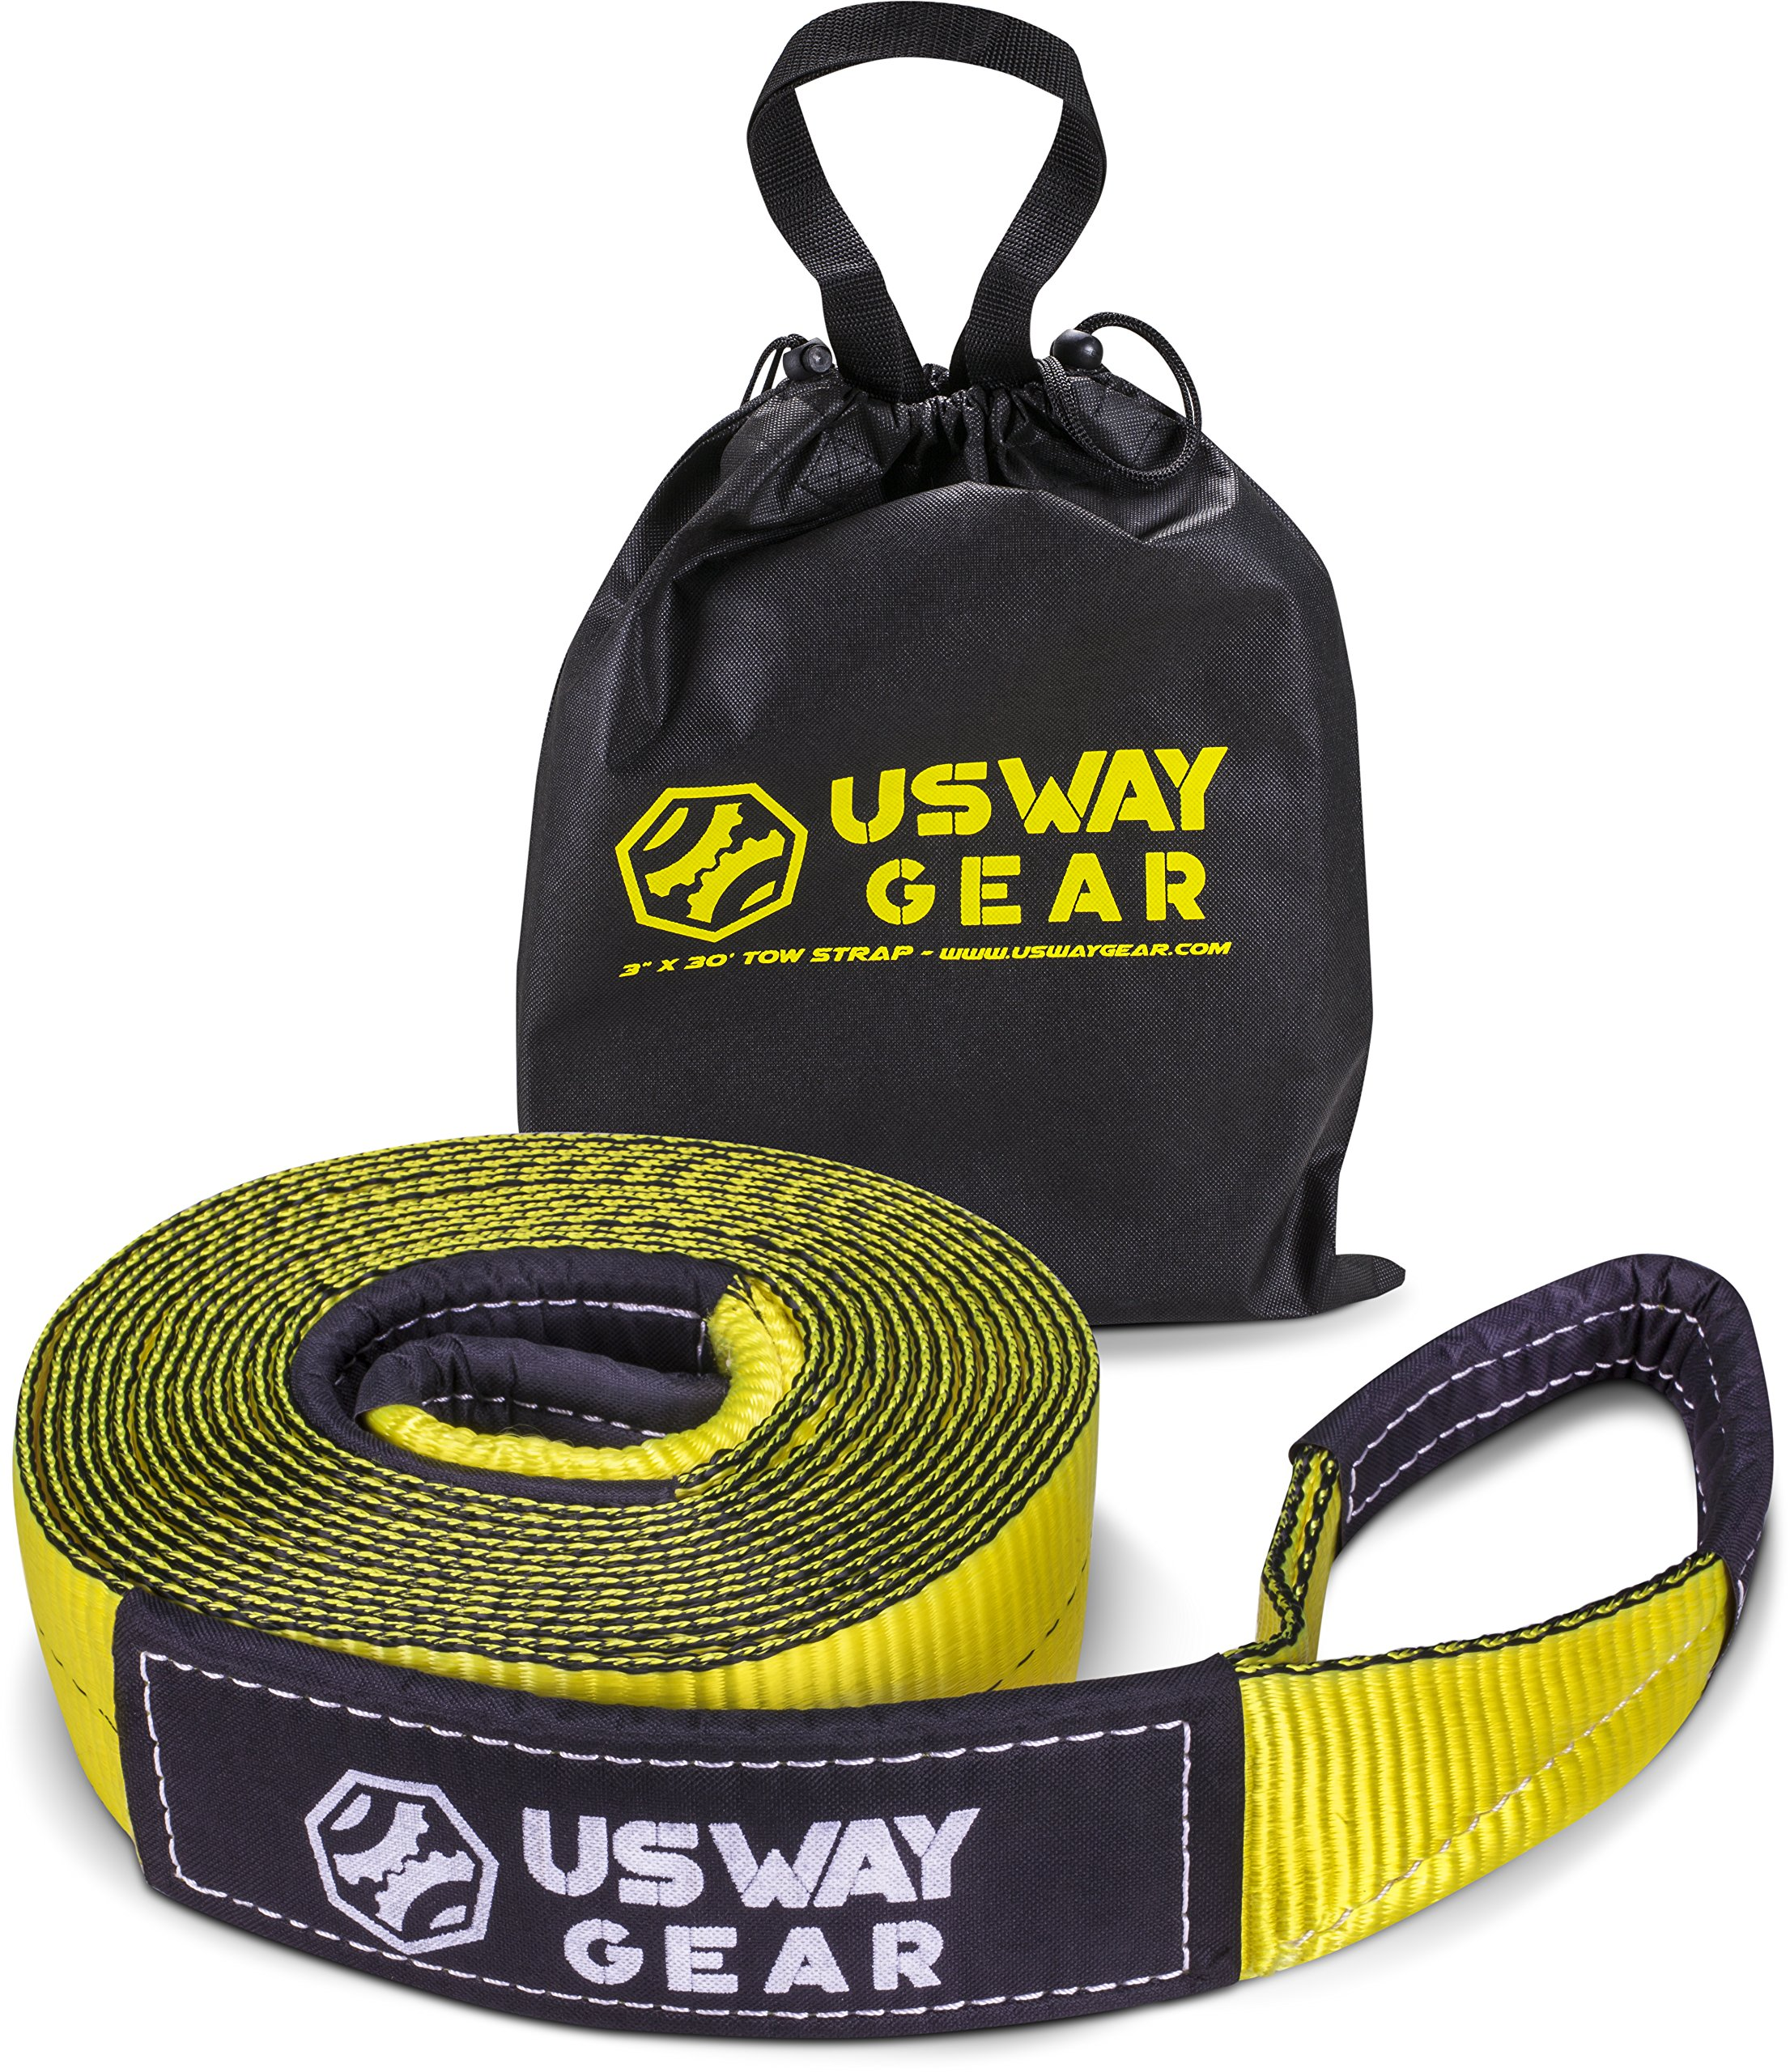 USWAY GEAR 3'' x 20' Tow Strap - 30.000 lbs (15 US TON) Rated Capacity Heavy Duty Vehicle Tow Strap with Reinforced Loops + Protective Sleeves + Storage Bag | Emergency Towing Rope for Recovery